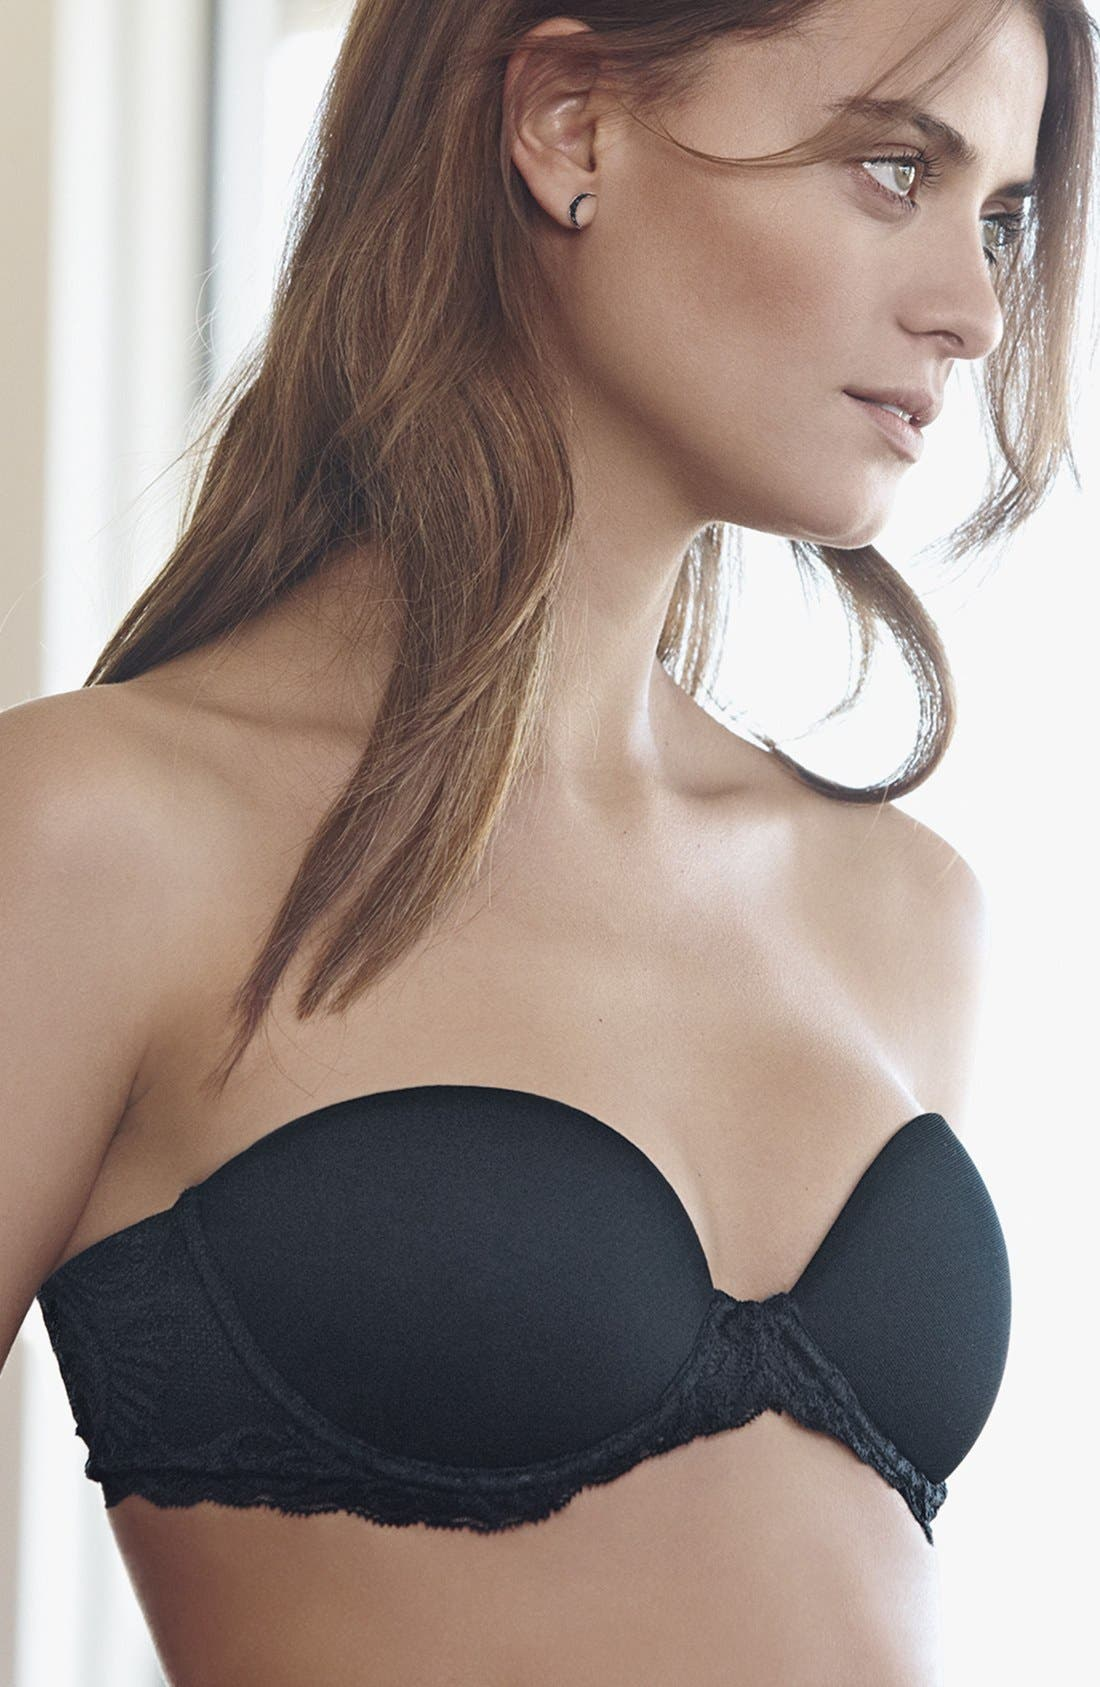 'Feathers' Underwire Convertible Strapless Bra,                             Alternate thumbnail 2, color,                             BLACK